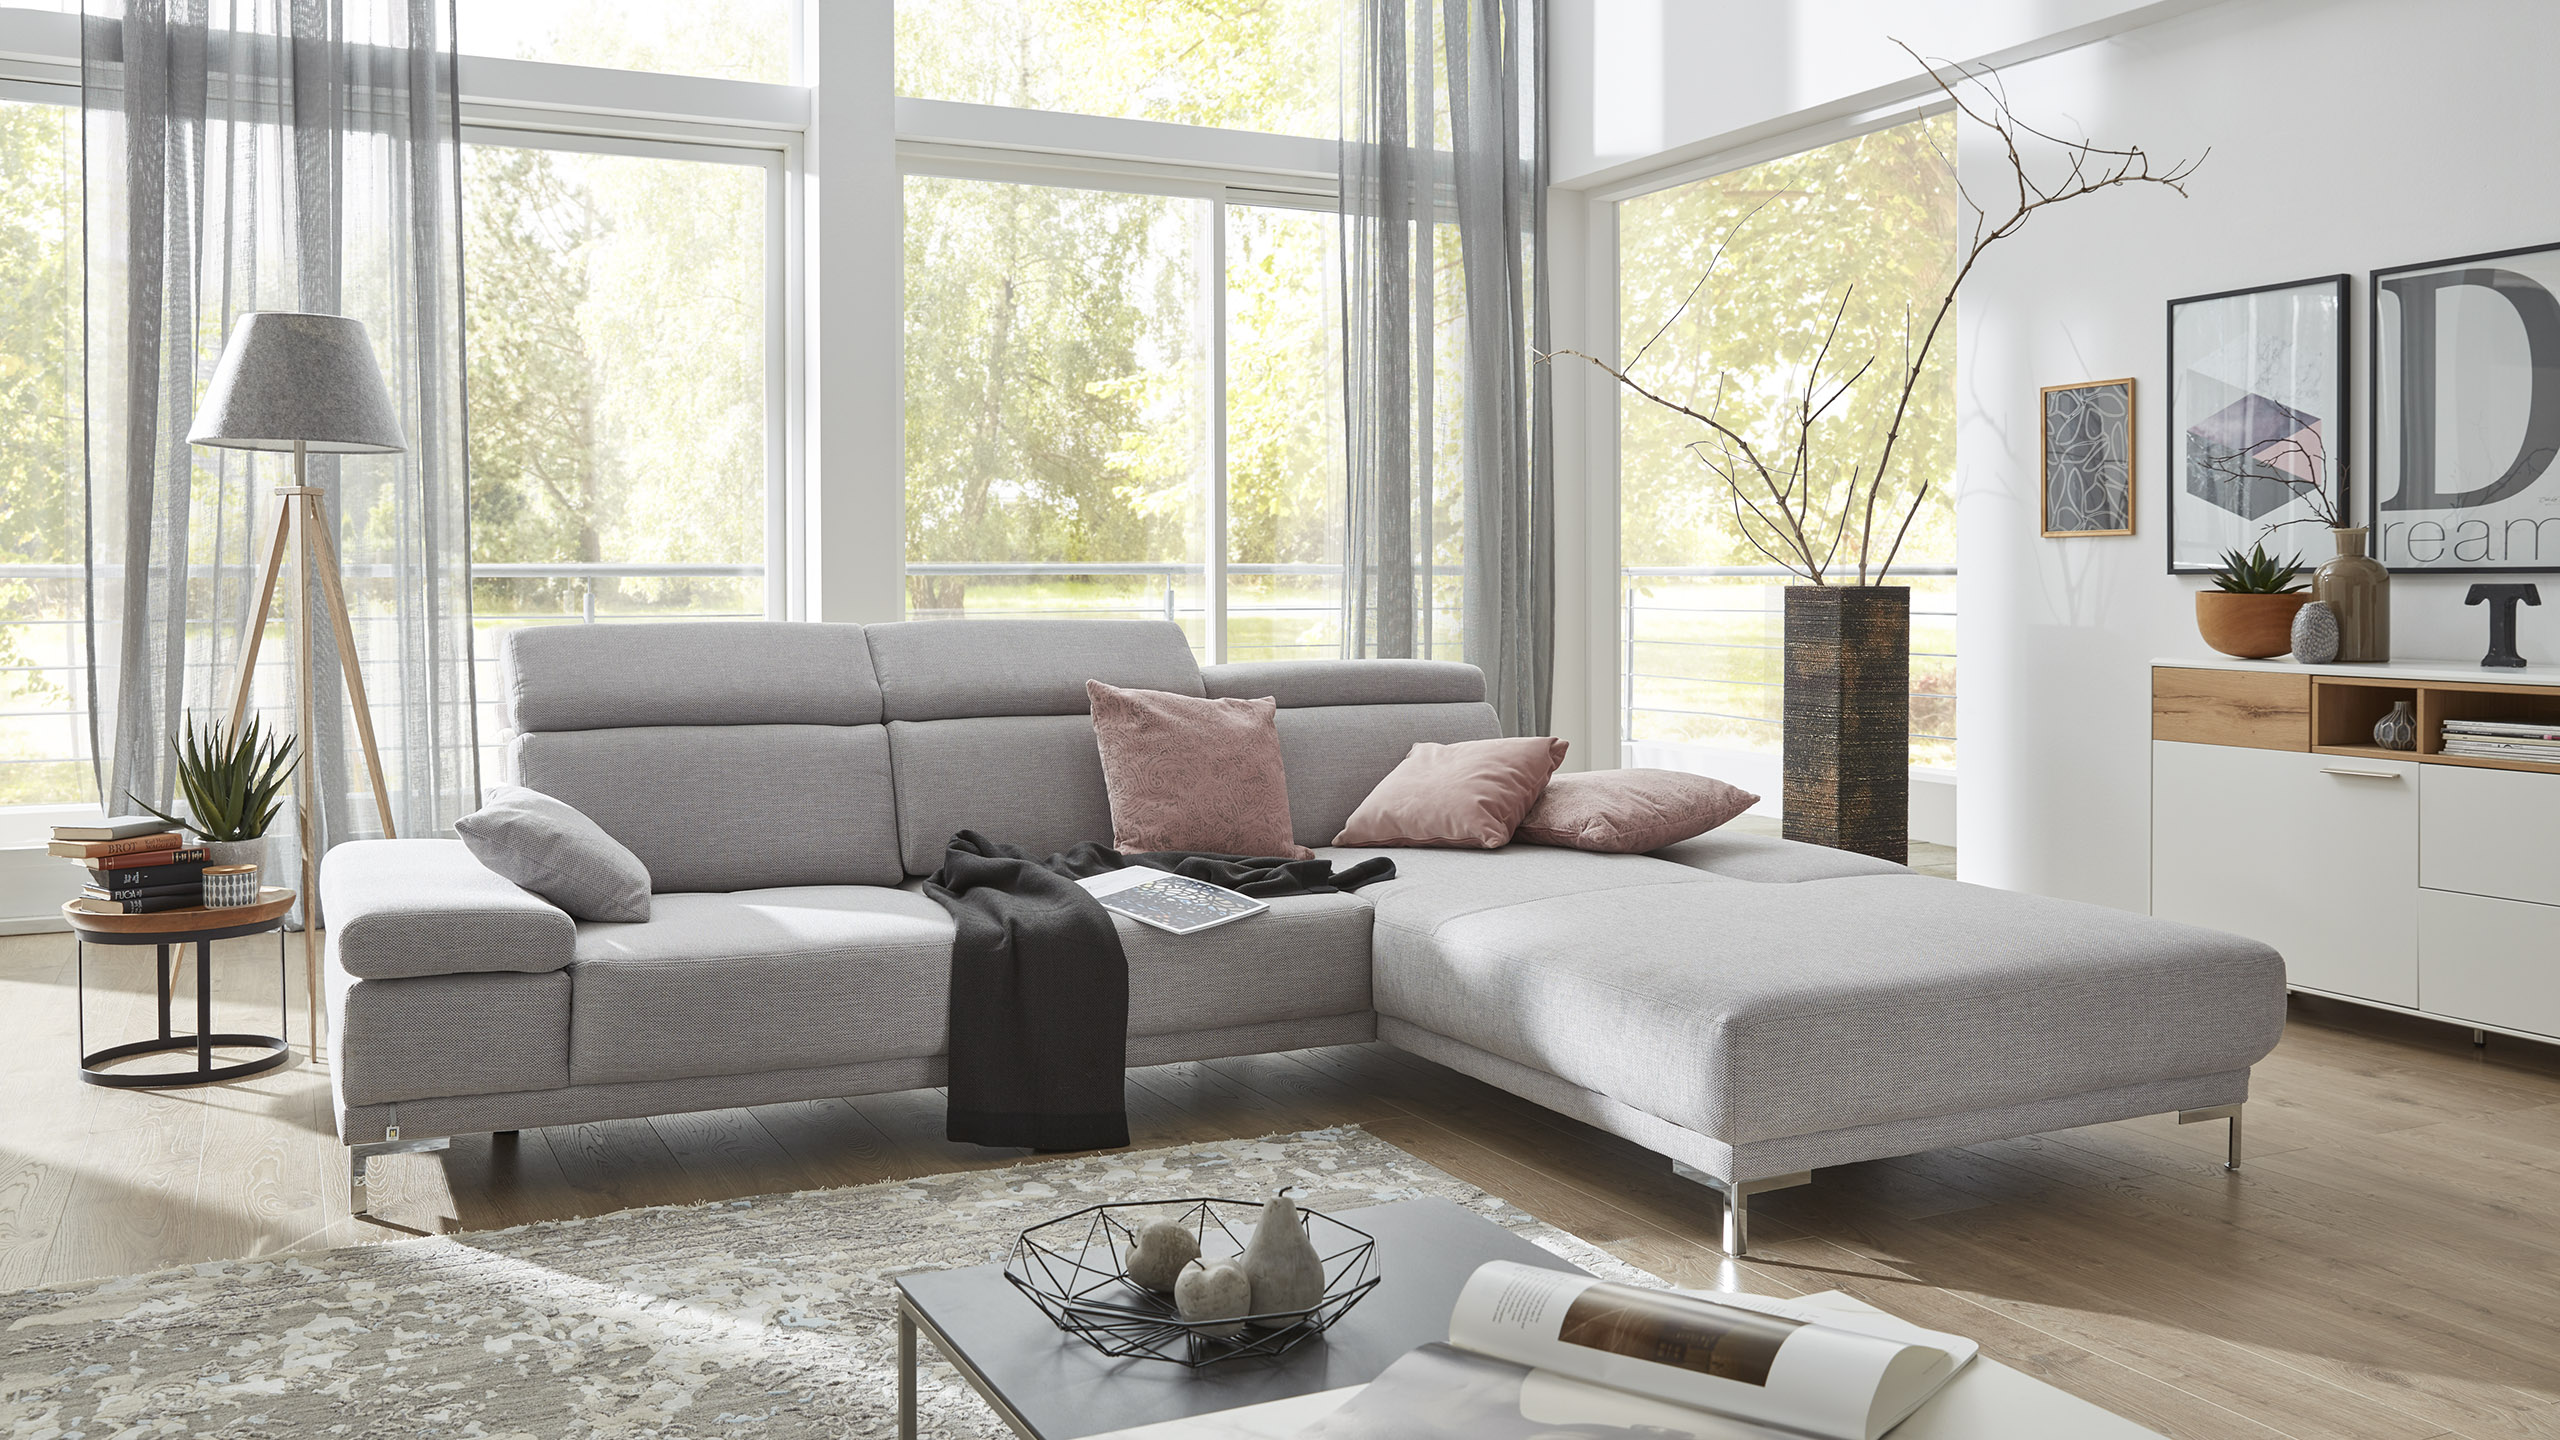 Wohnlandschaft Konfigurieren Interliving Sofa Serie 4251 Interliving